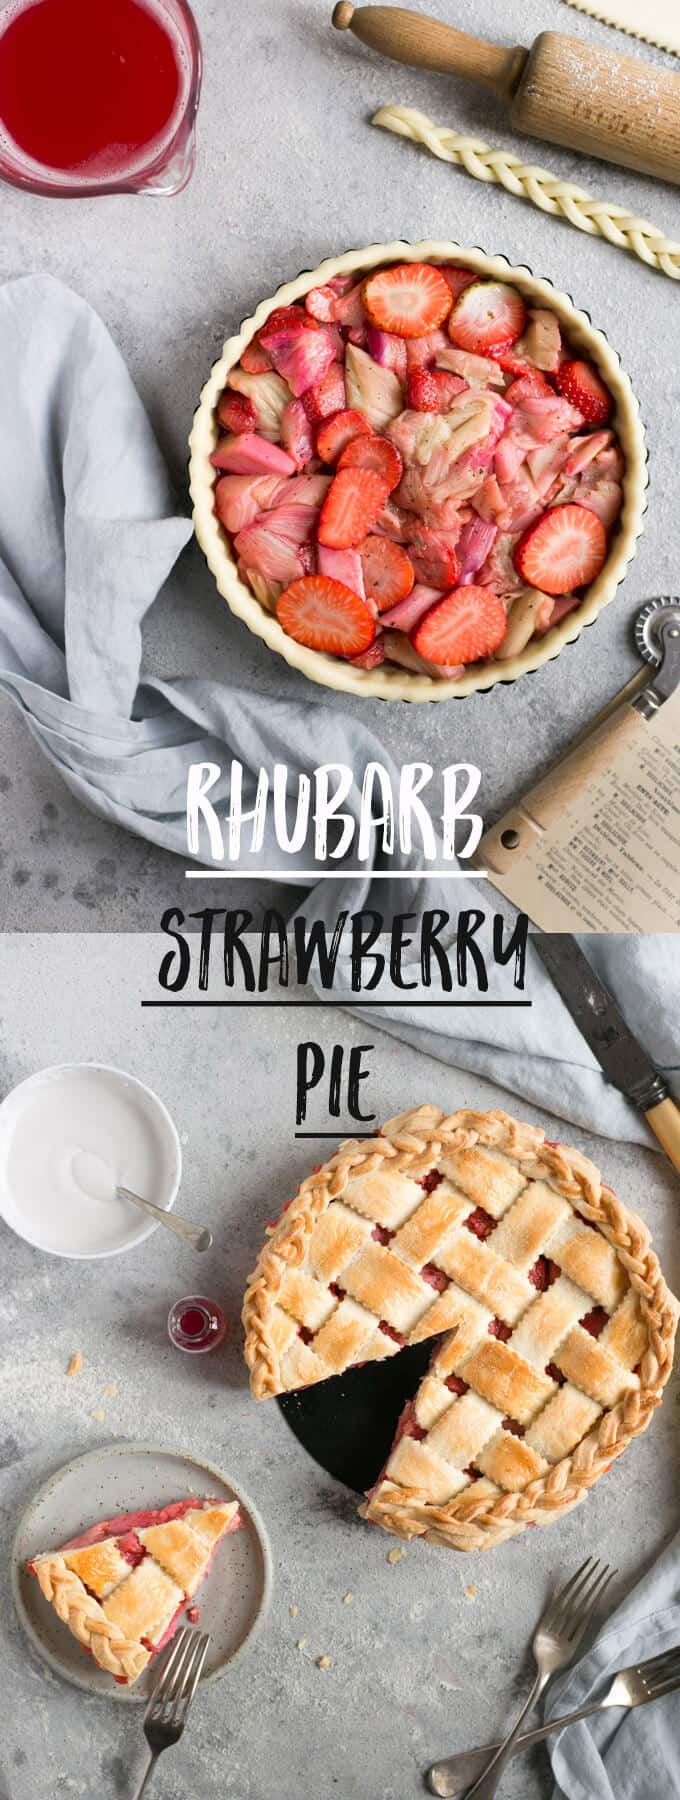 Classic rhubarb strawberry pie recipe! Delicious buttery pastry filled with tangy-sweet rhubarb and strawberries! #rhubarb #pie #vegan #strawberry | via @annabanana.co